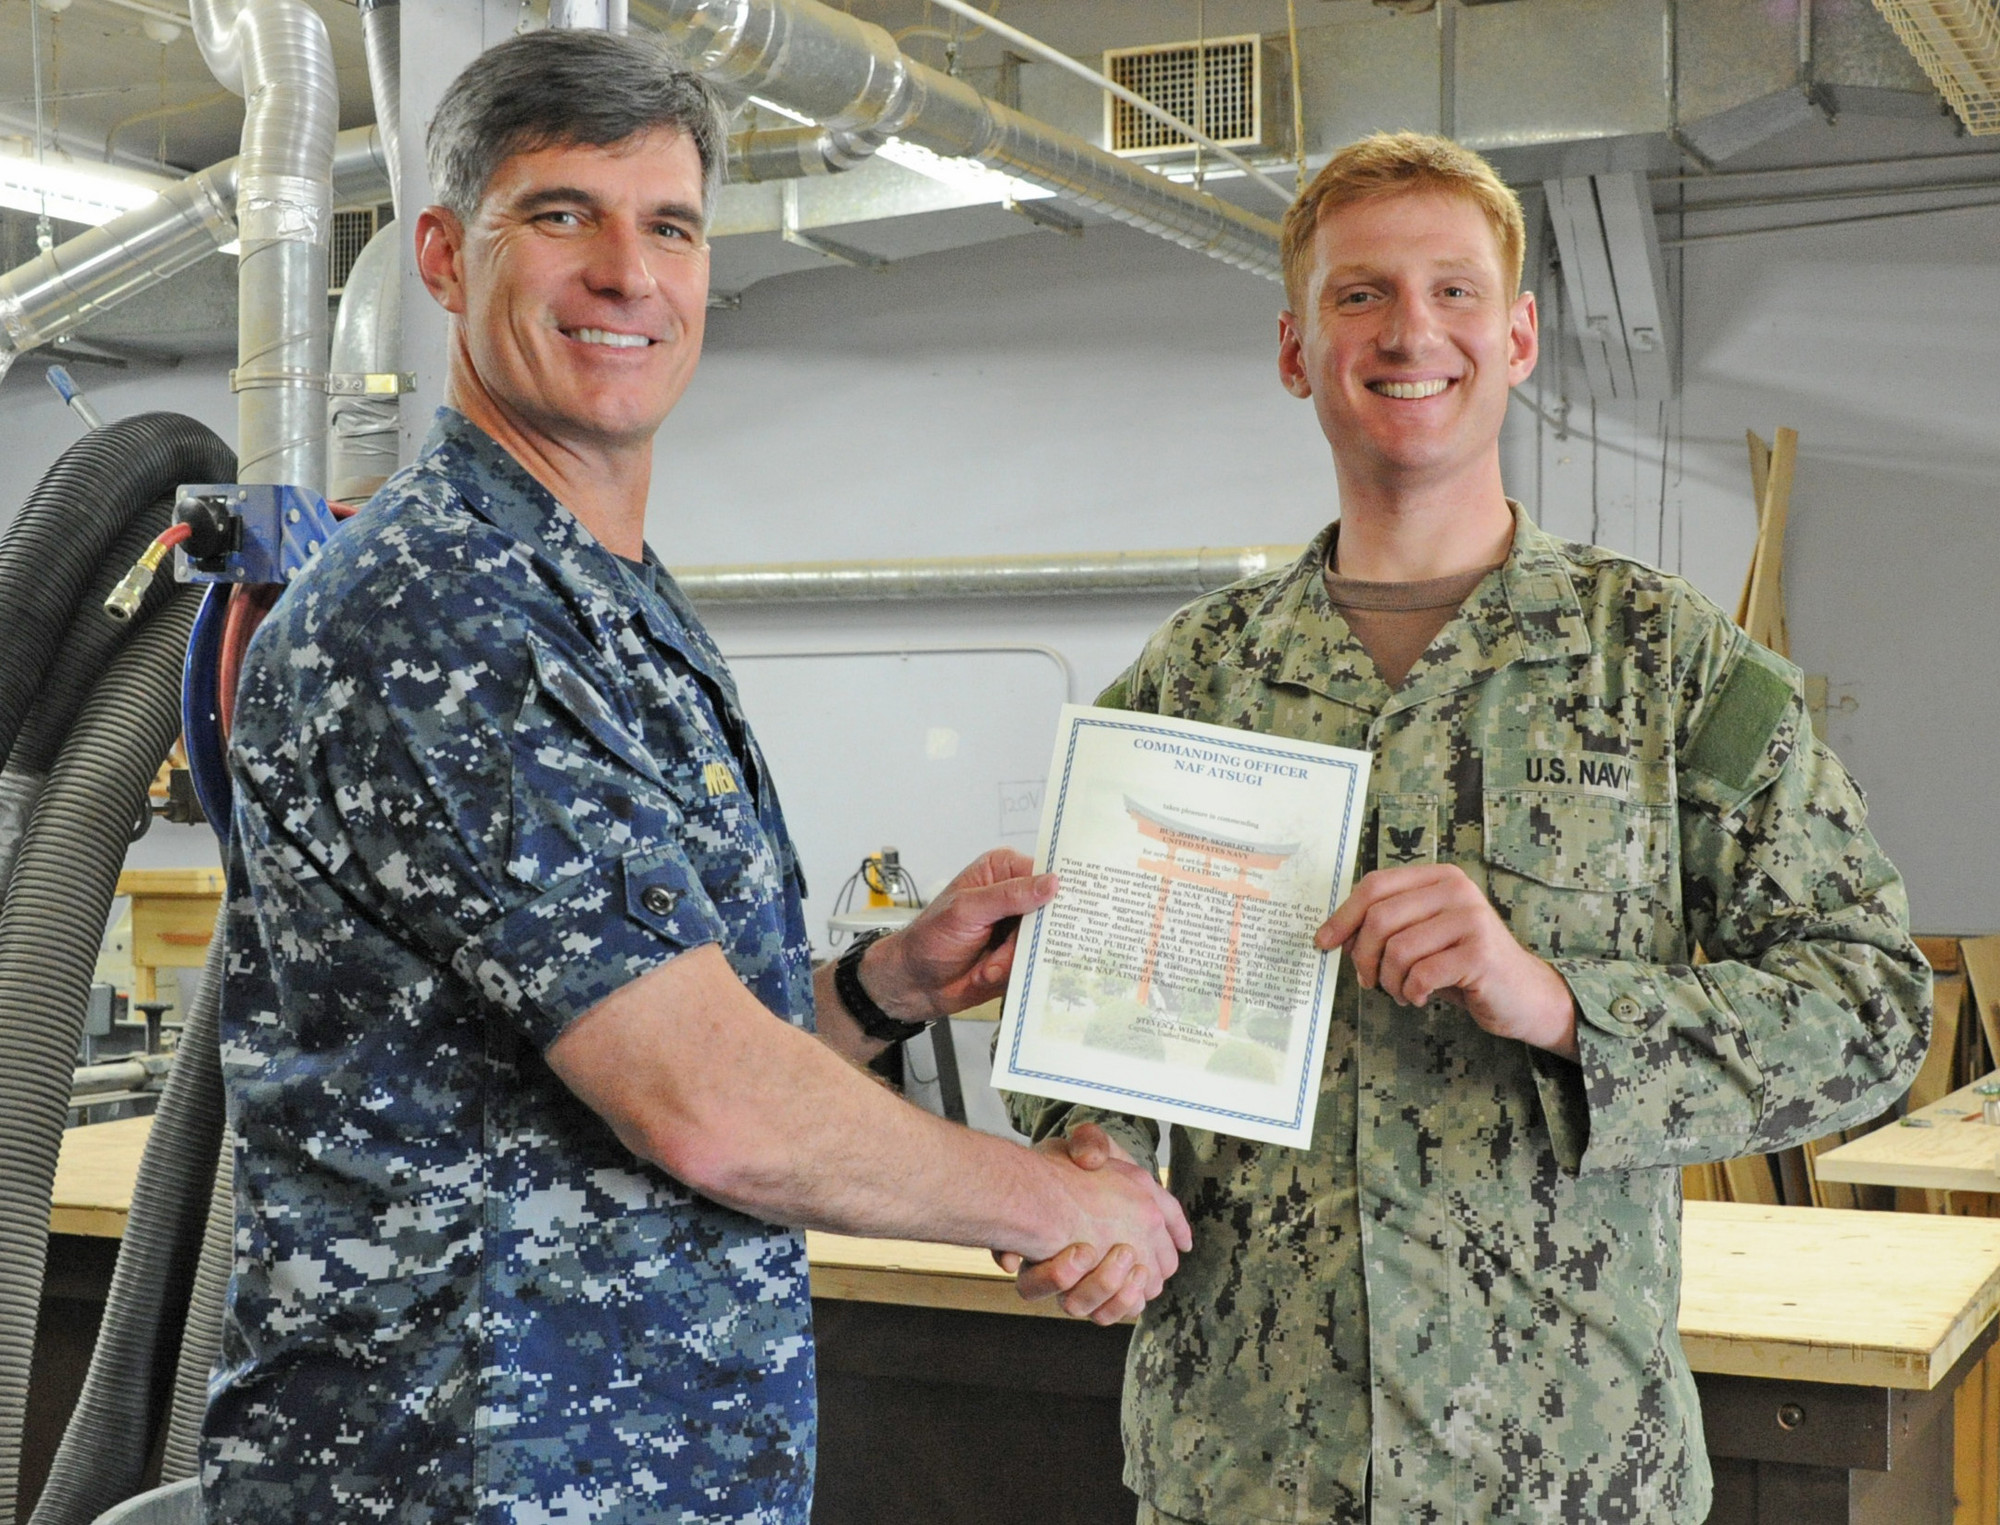 Skoblicki, right, received a letter of commendation from Naval Air Facility Atsugi Commanding Officer Capt. Steven Wieman in recognition of his selection as Sailor of the Week.